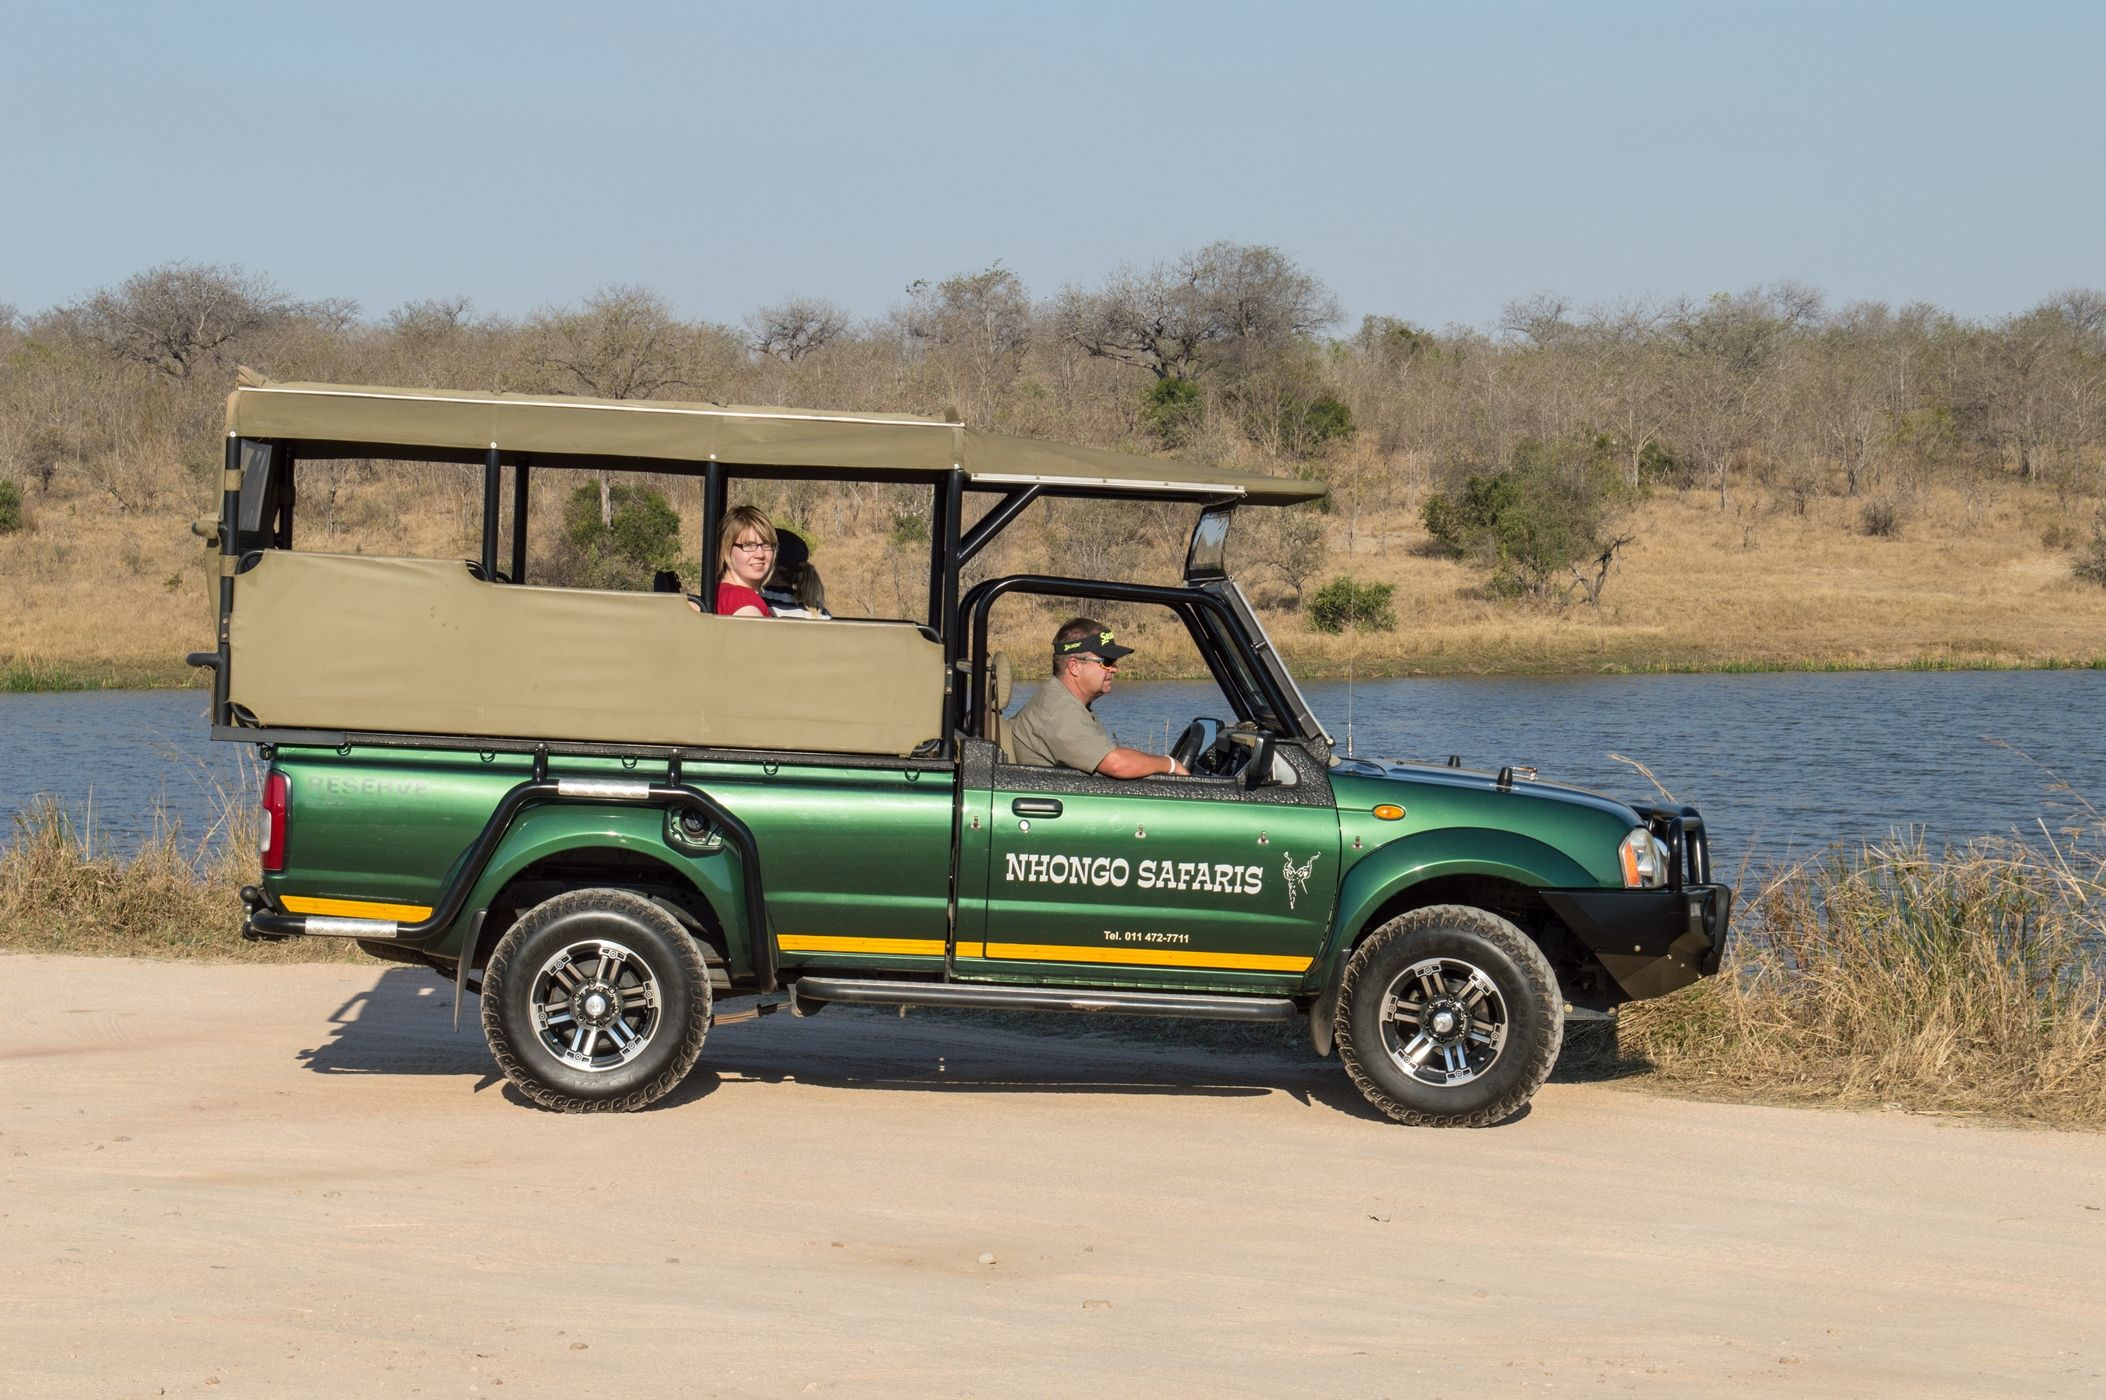 Open Safari Vehicle | Nhongo safaris Photoshoot Done By ARL